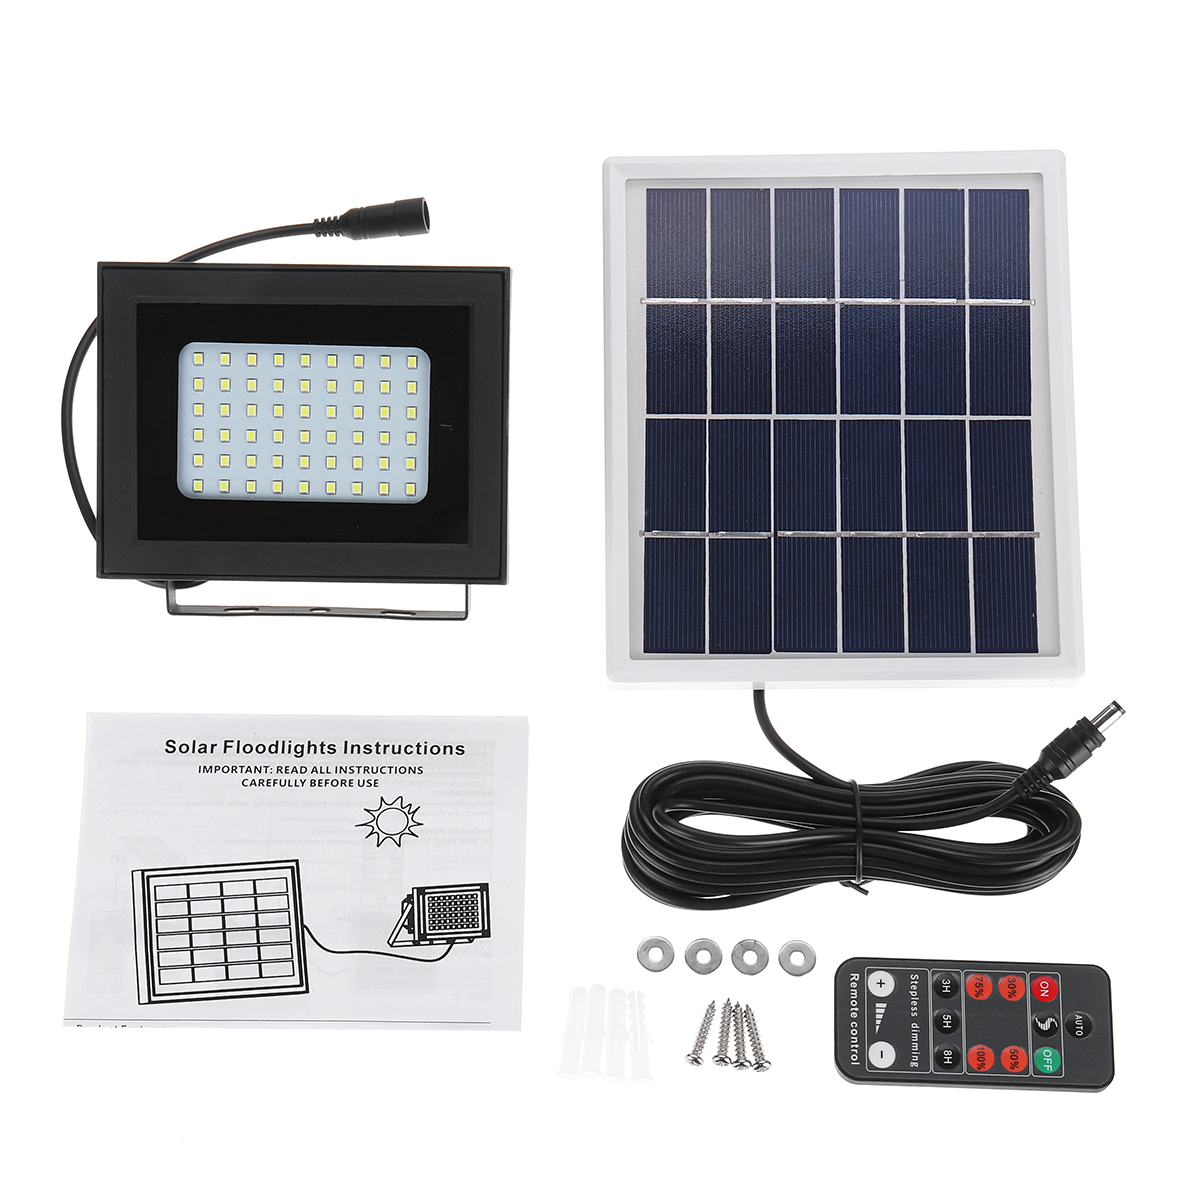 400LM 54 LED Solar Panel Flood Light Spotlight Project Lamp IP65 Waterproof Outdoor Camping Emergency Lantern With Remote Control 21